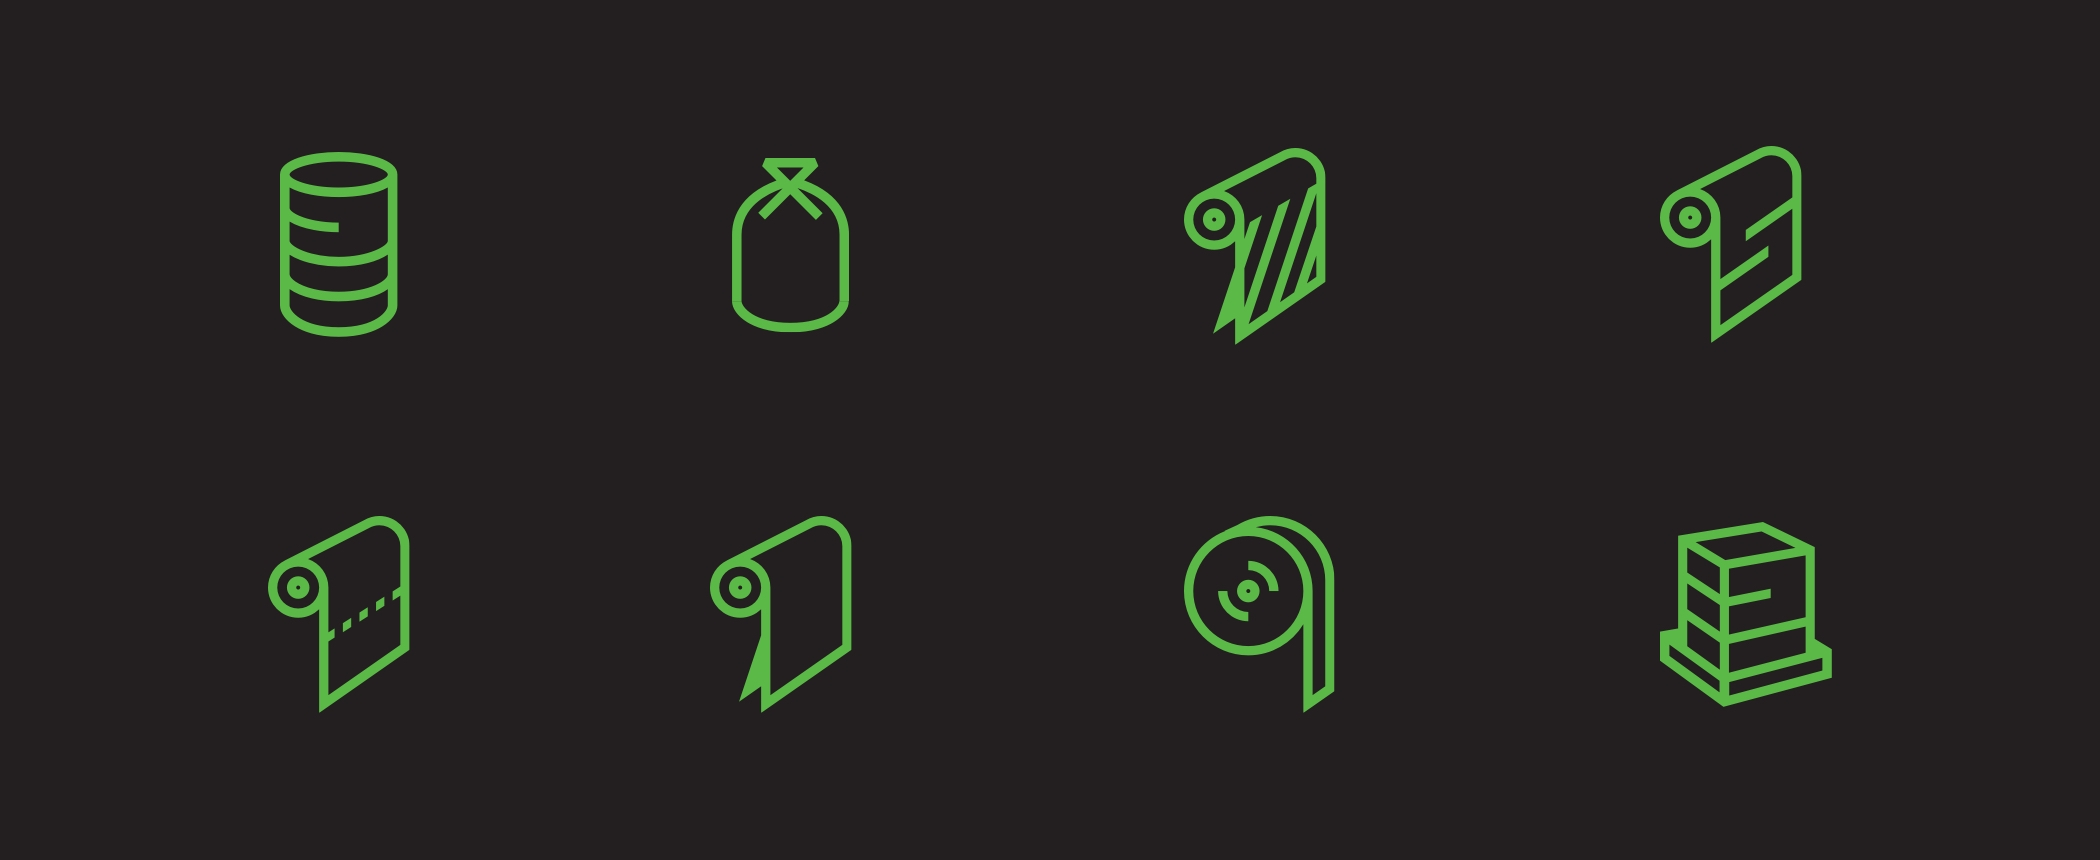 Eight illustrated icons drawn with green lines depicting the different types of Rodeo Plastics products.